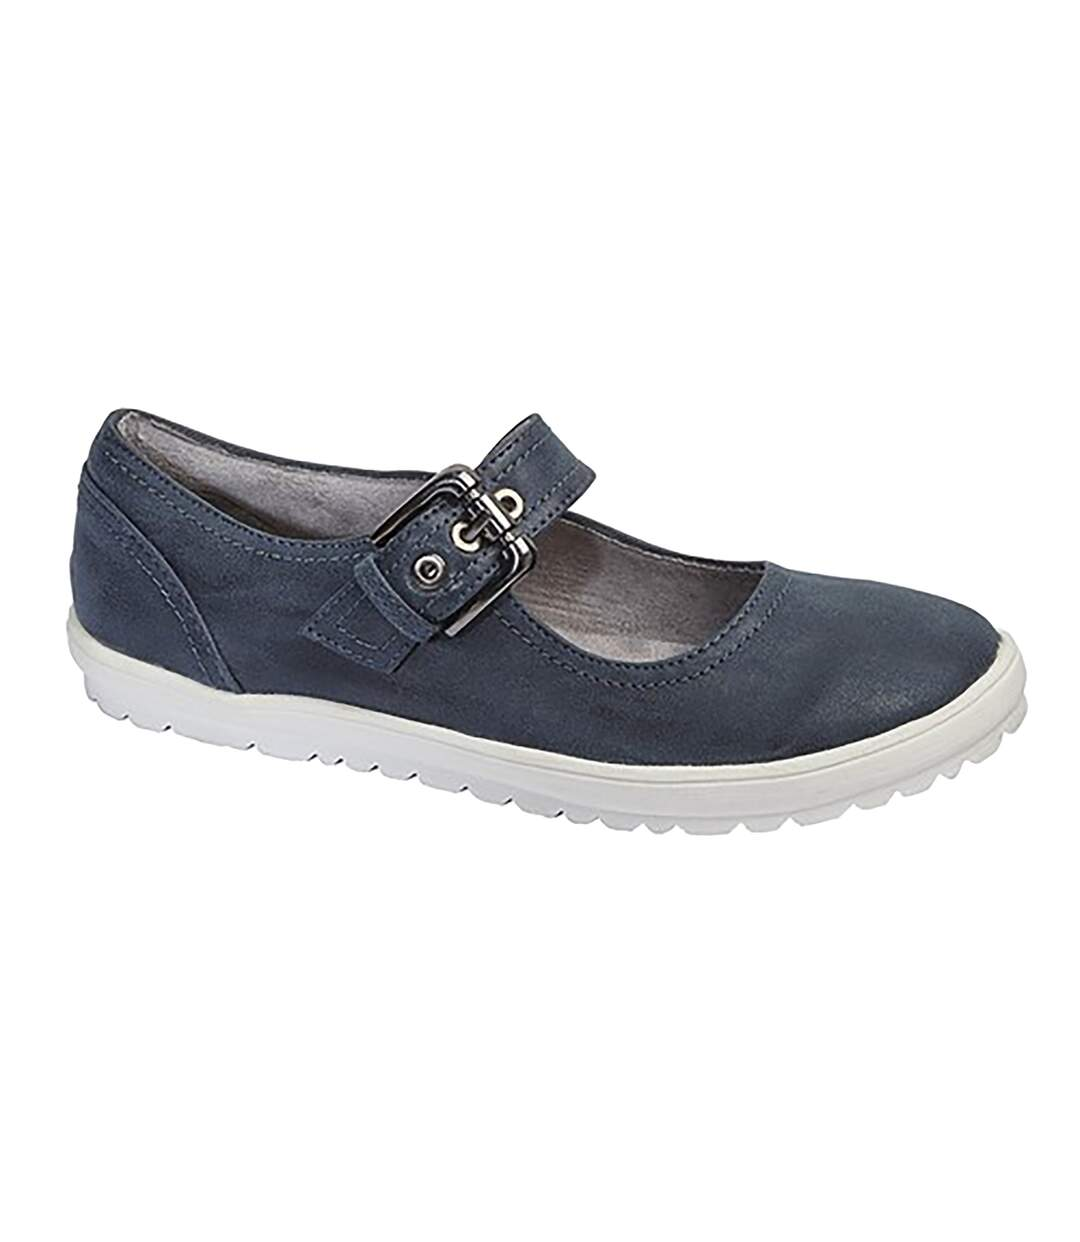 Chaussures Ouvertes Cipriata Florence Femme